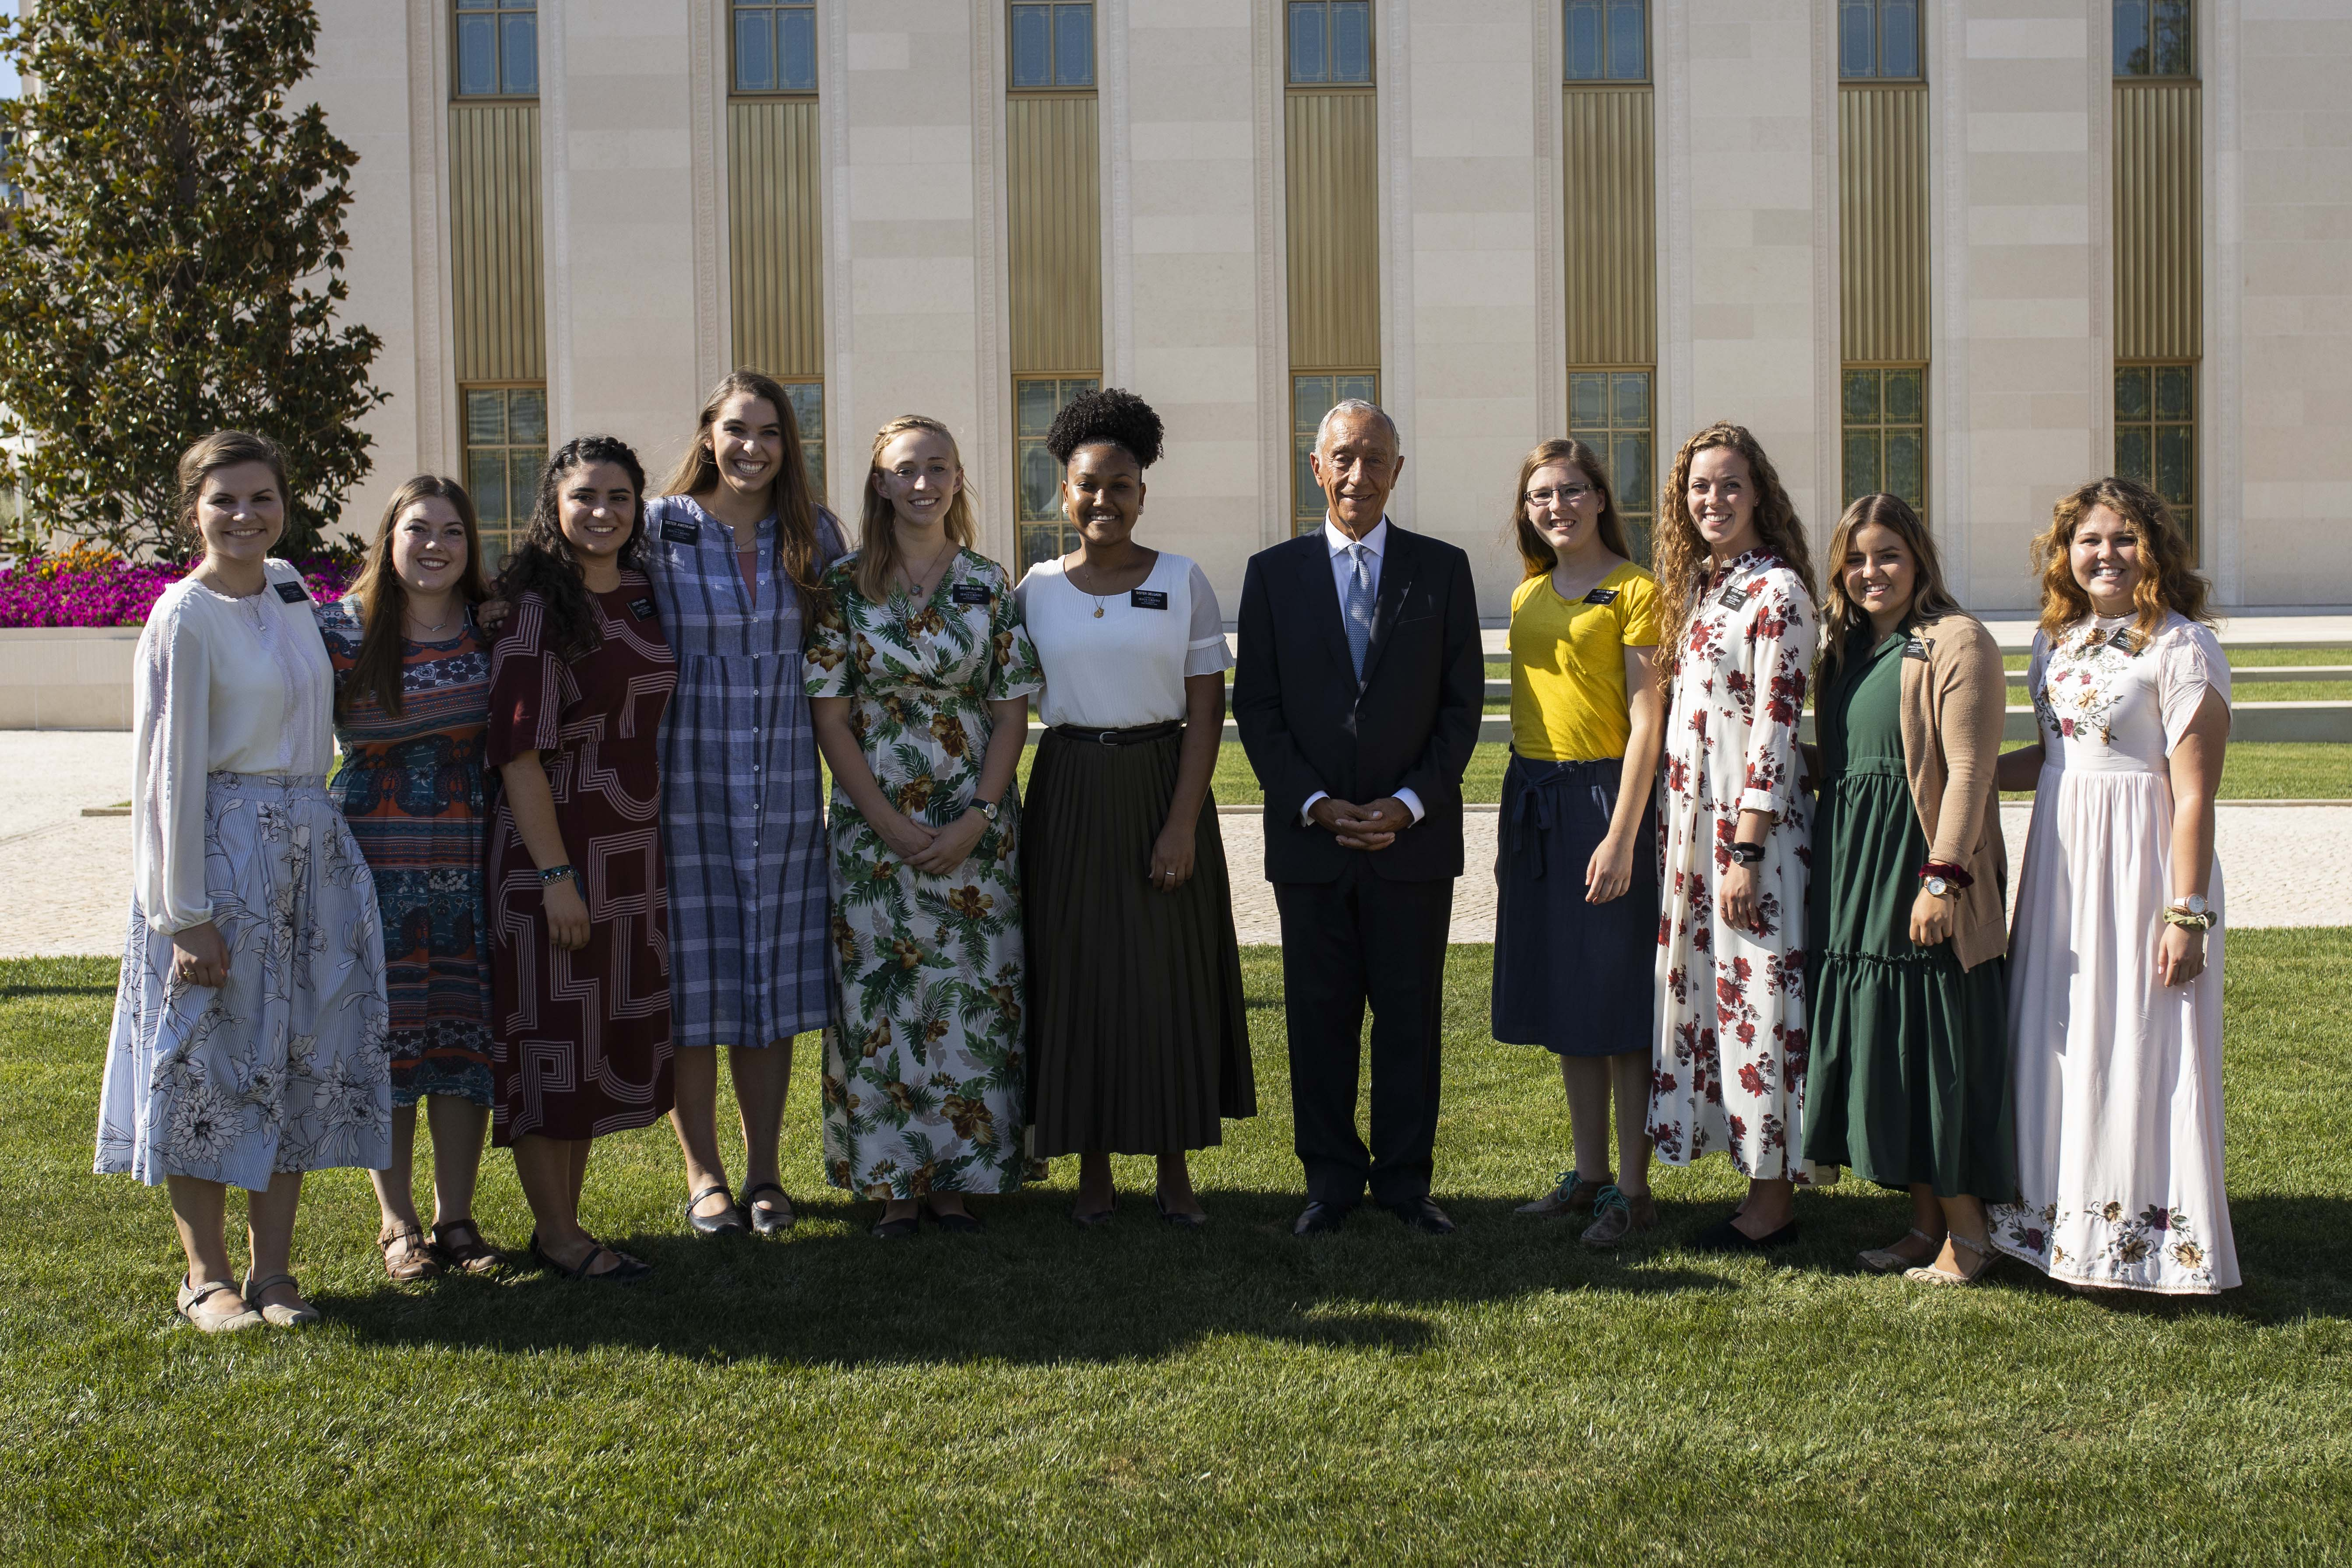 The president of Portugal, Marcelo Rebelo de Sousa, poses with missionaries of The Church of Jesus Christ of Latter-day Saints in front of the Lisbon Portugal Temple on Aug. 29, 2019.